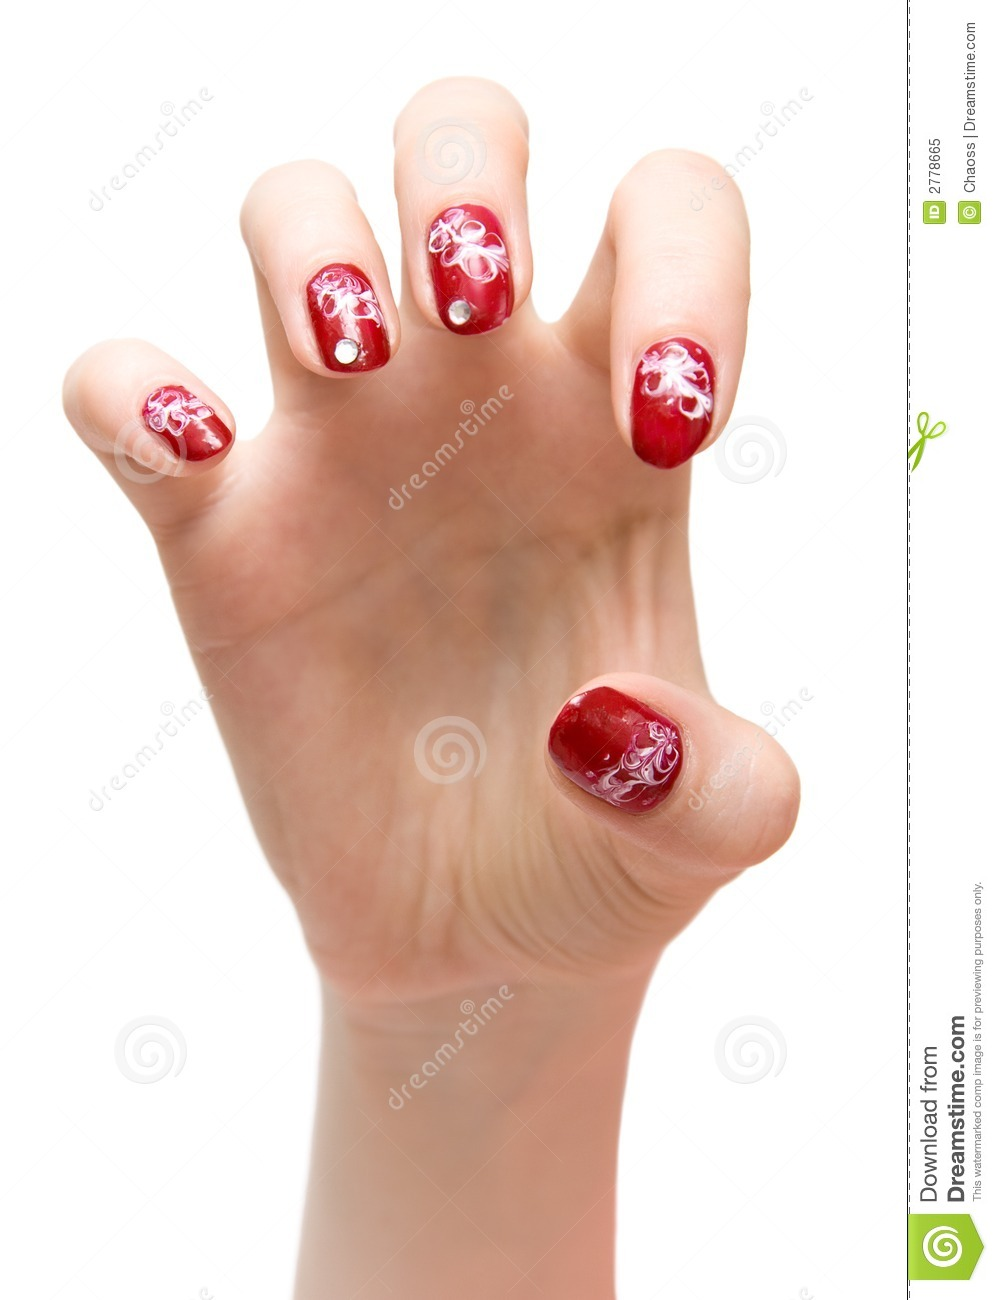 Scratching woman hand stock image. Image of female ...